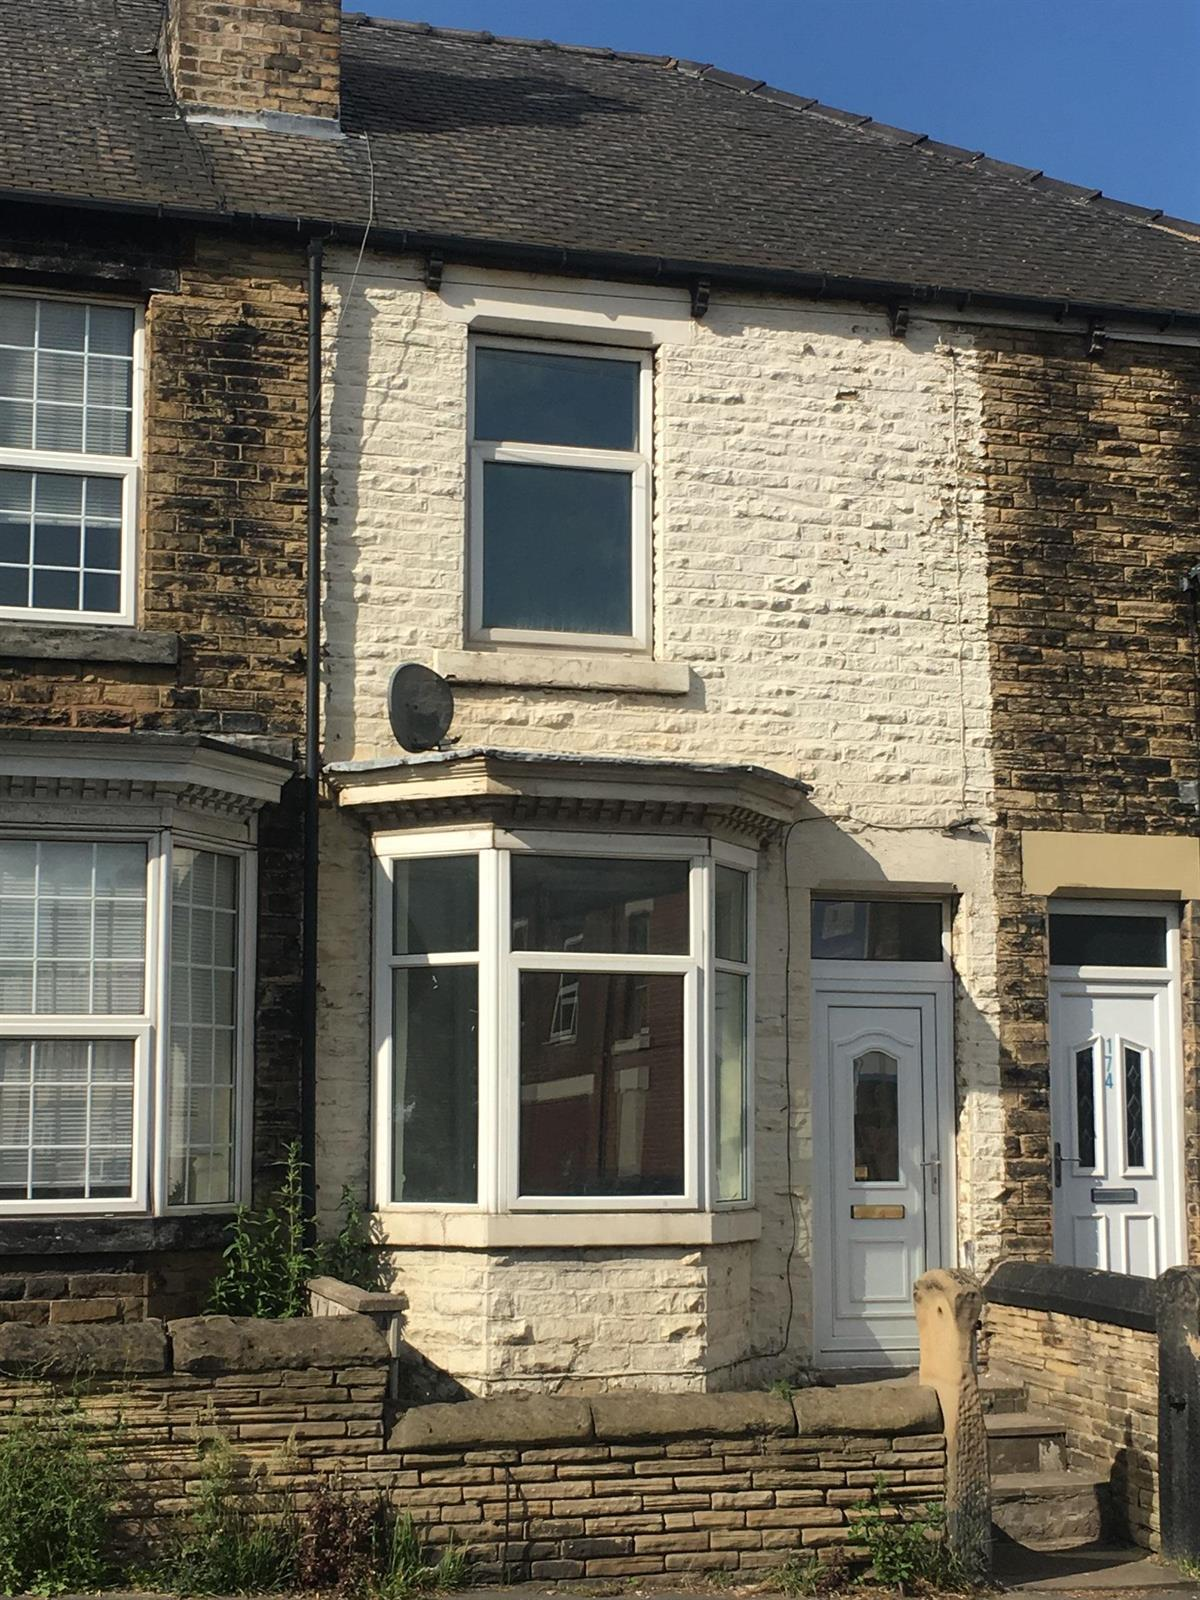 To Let - 2 bedroom Terraced house, Wath Road, Mexborough, S64 - £450 pcm